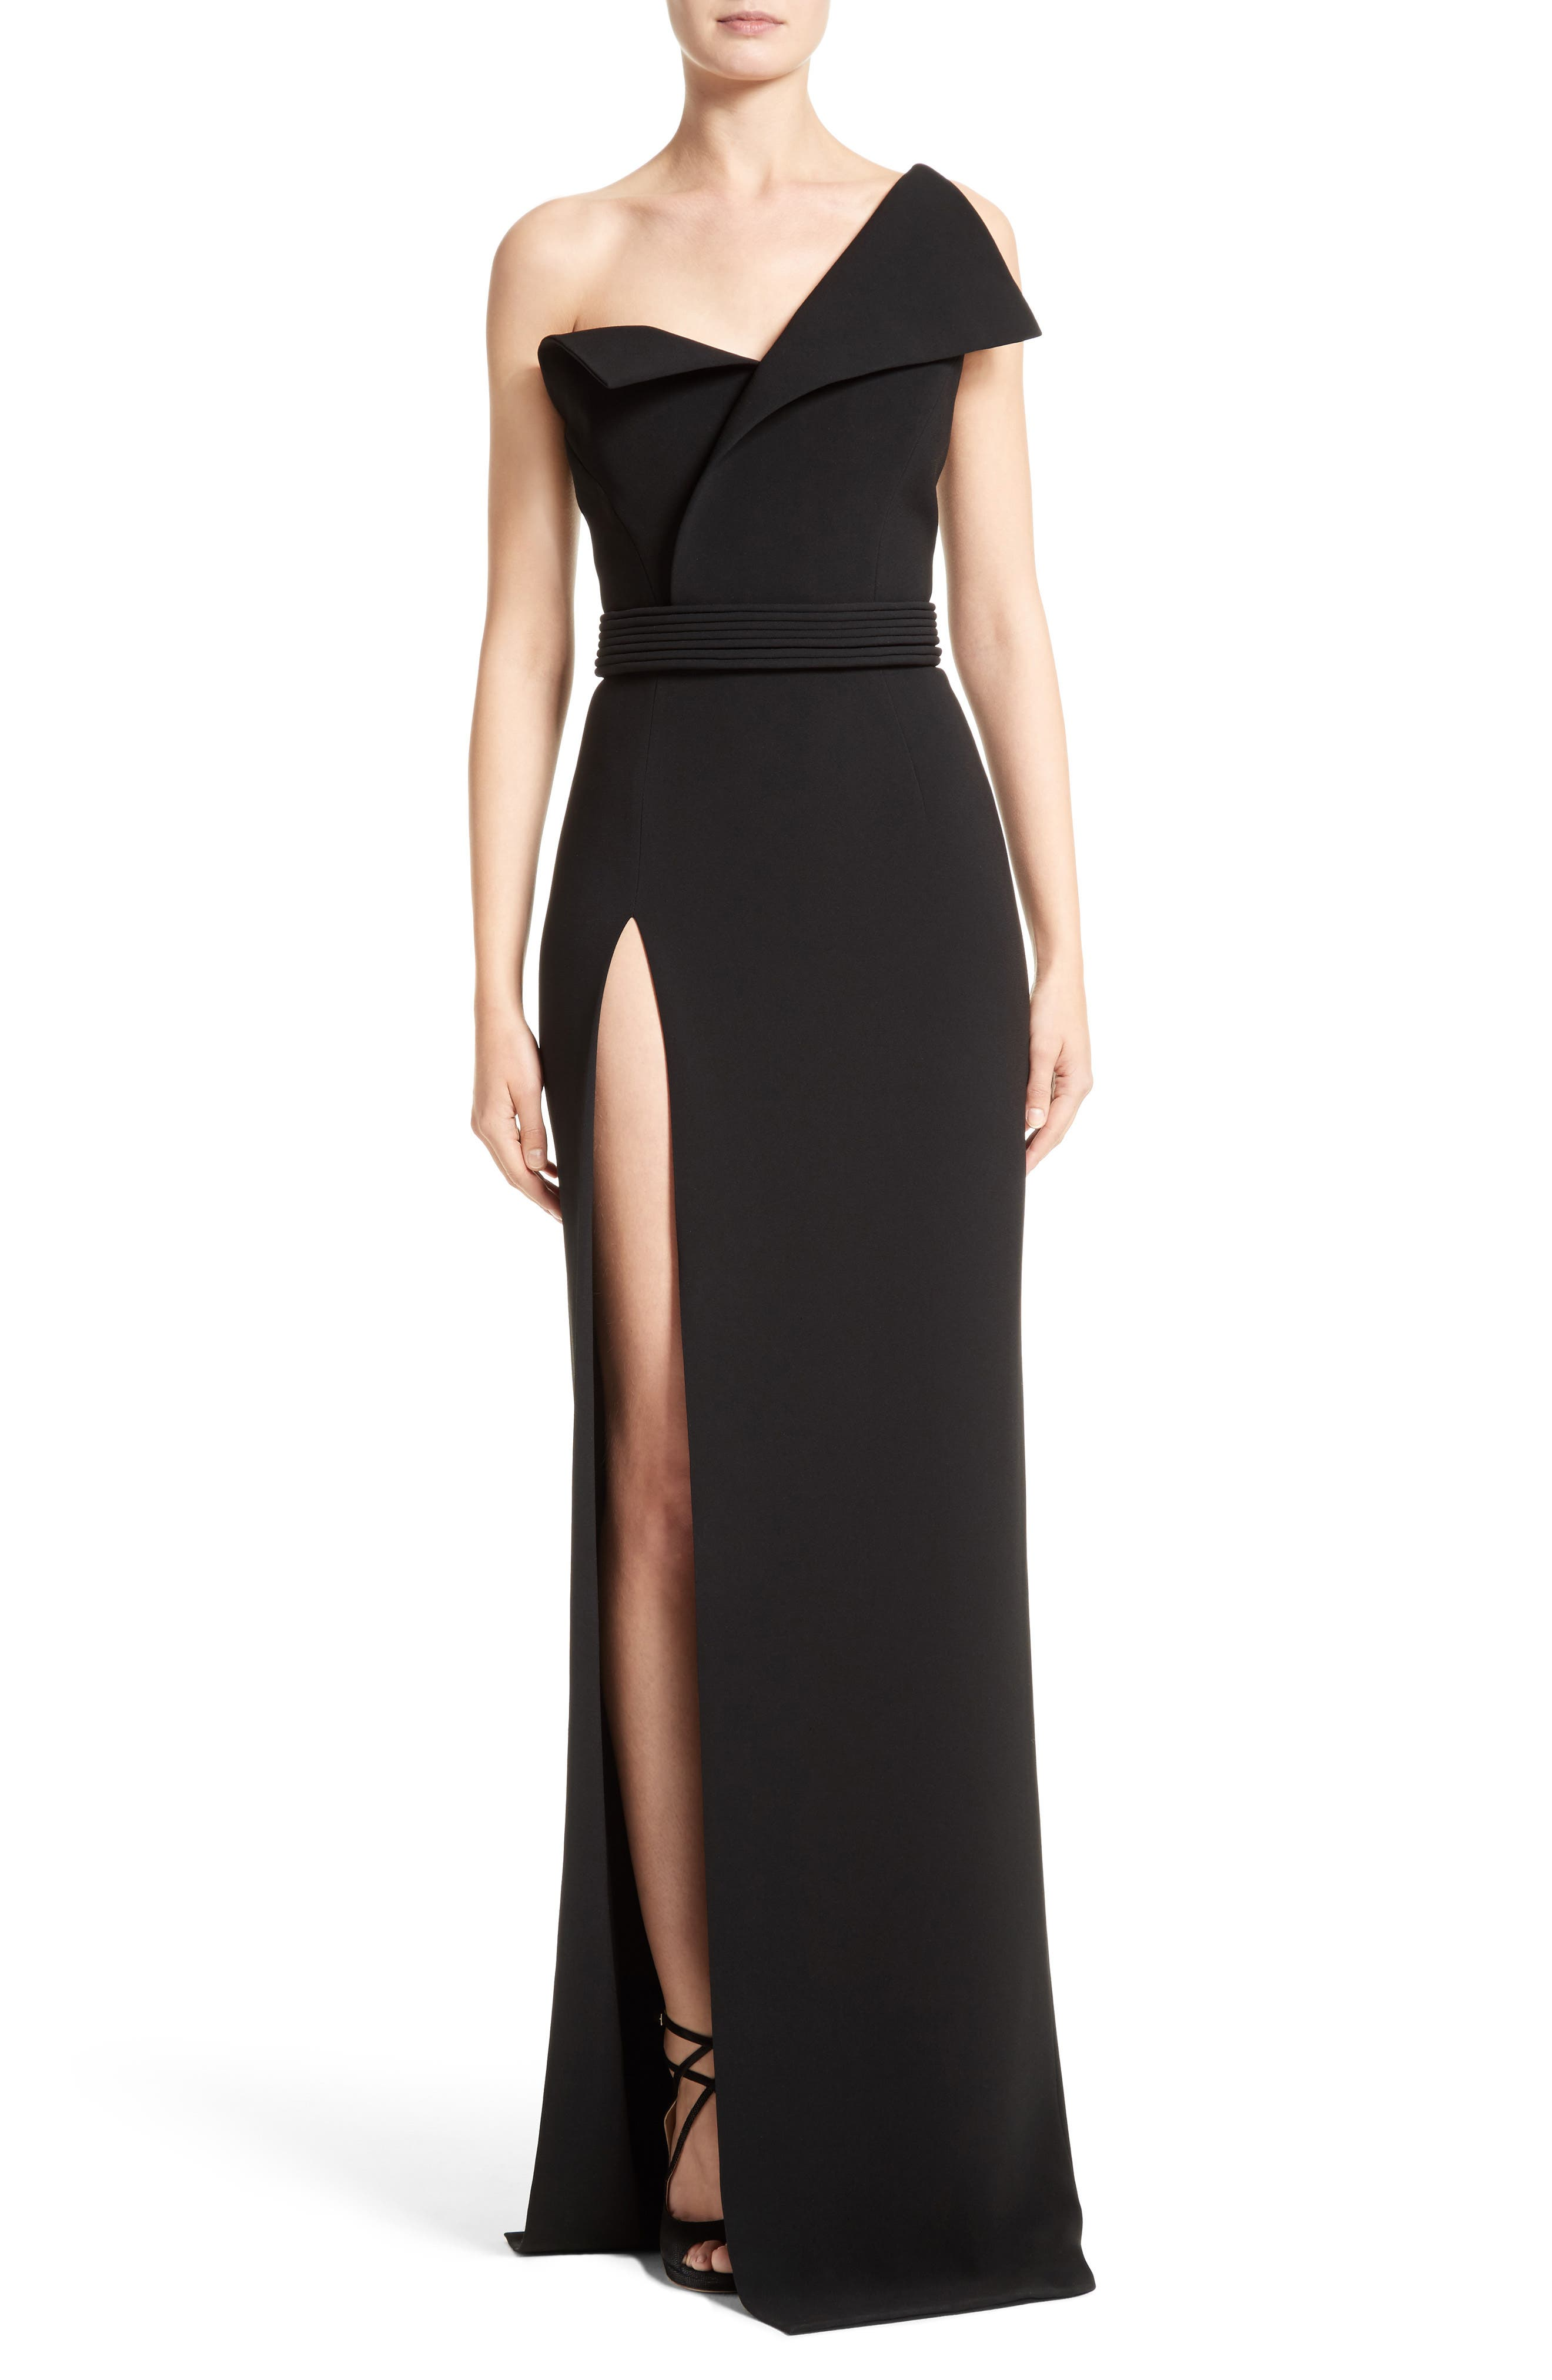 Main Image - Brandon Maxwell Belted Foldover Neck Gown with High Slit